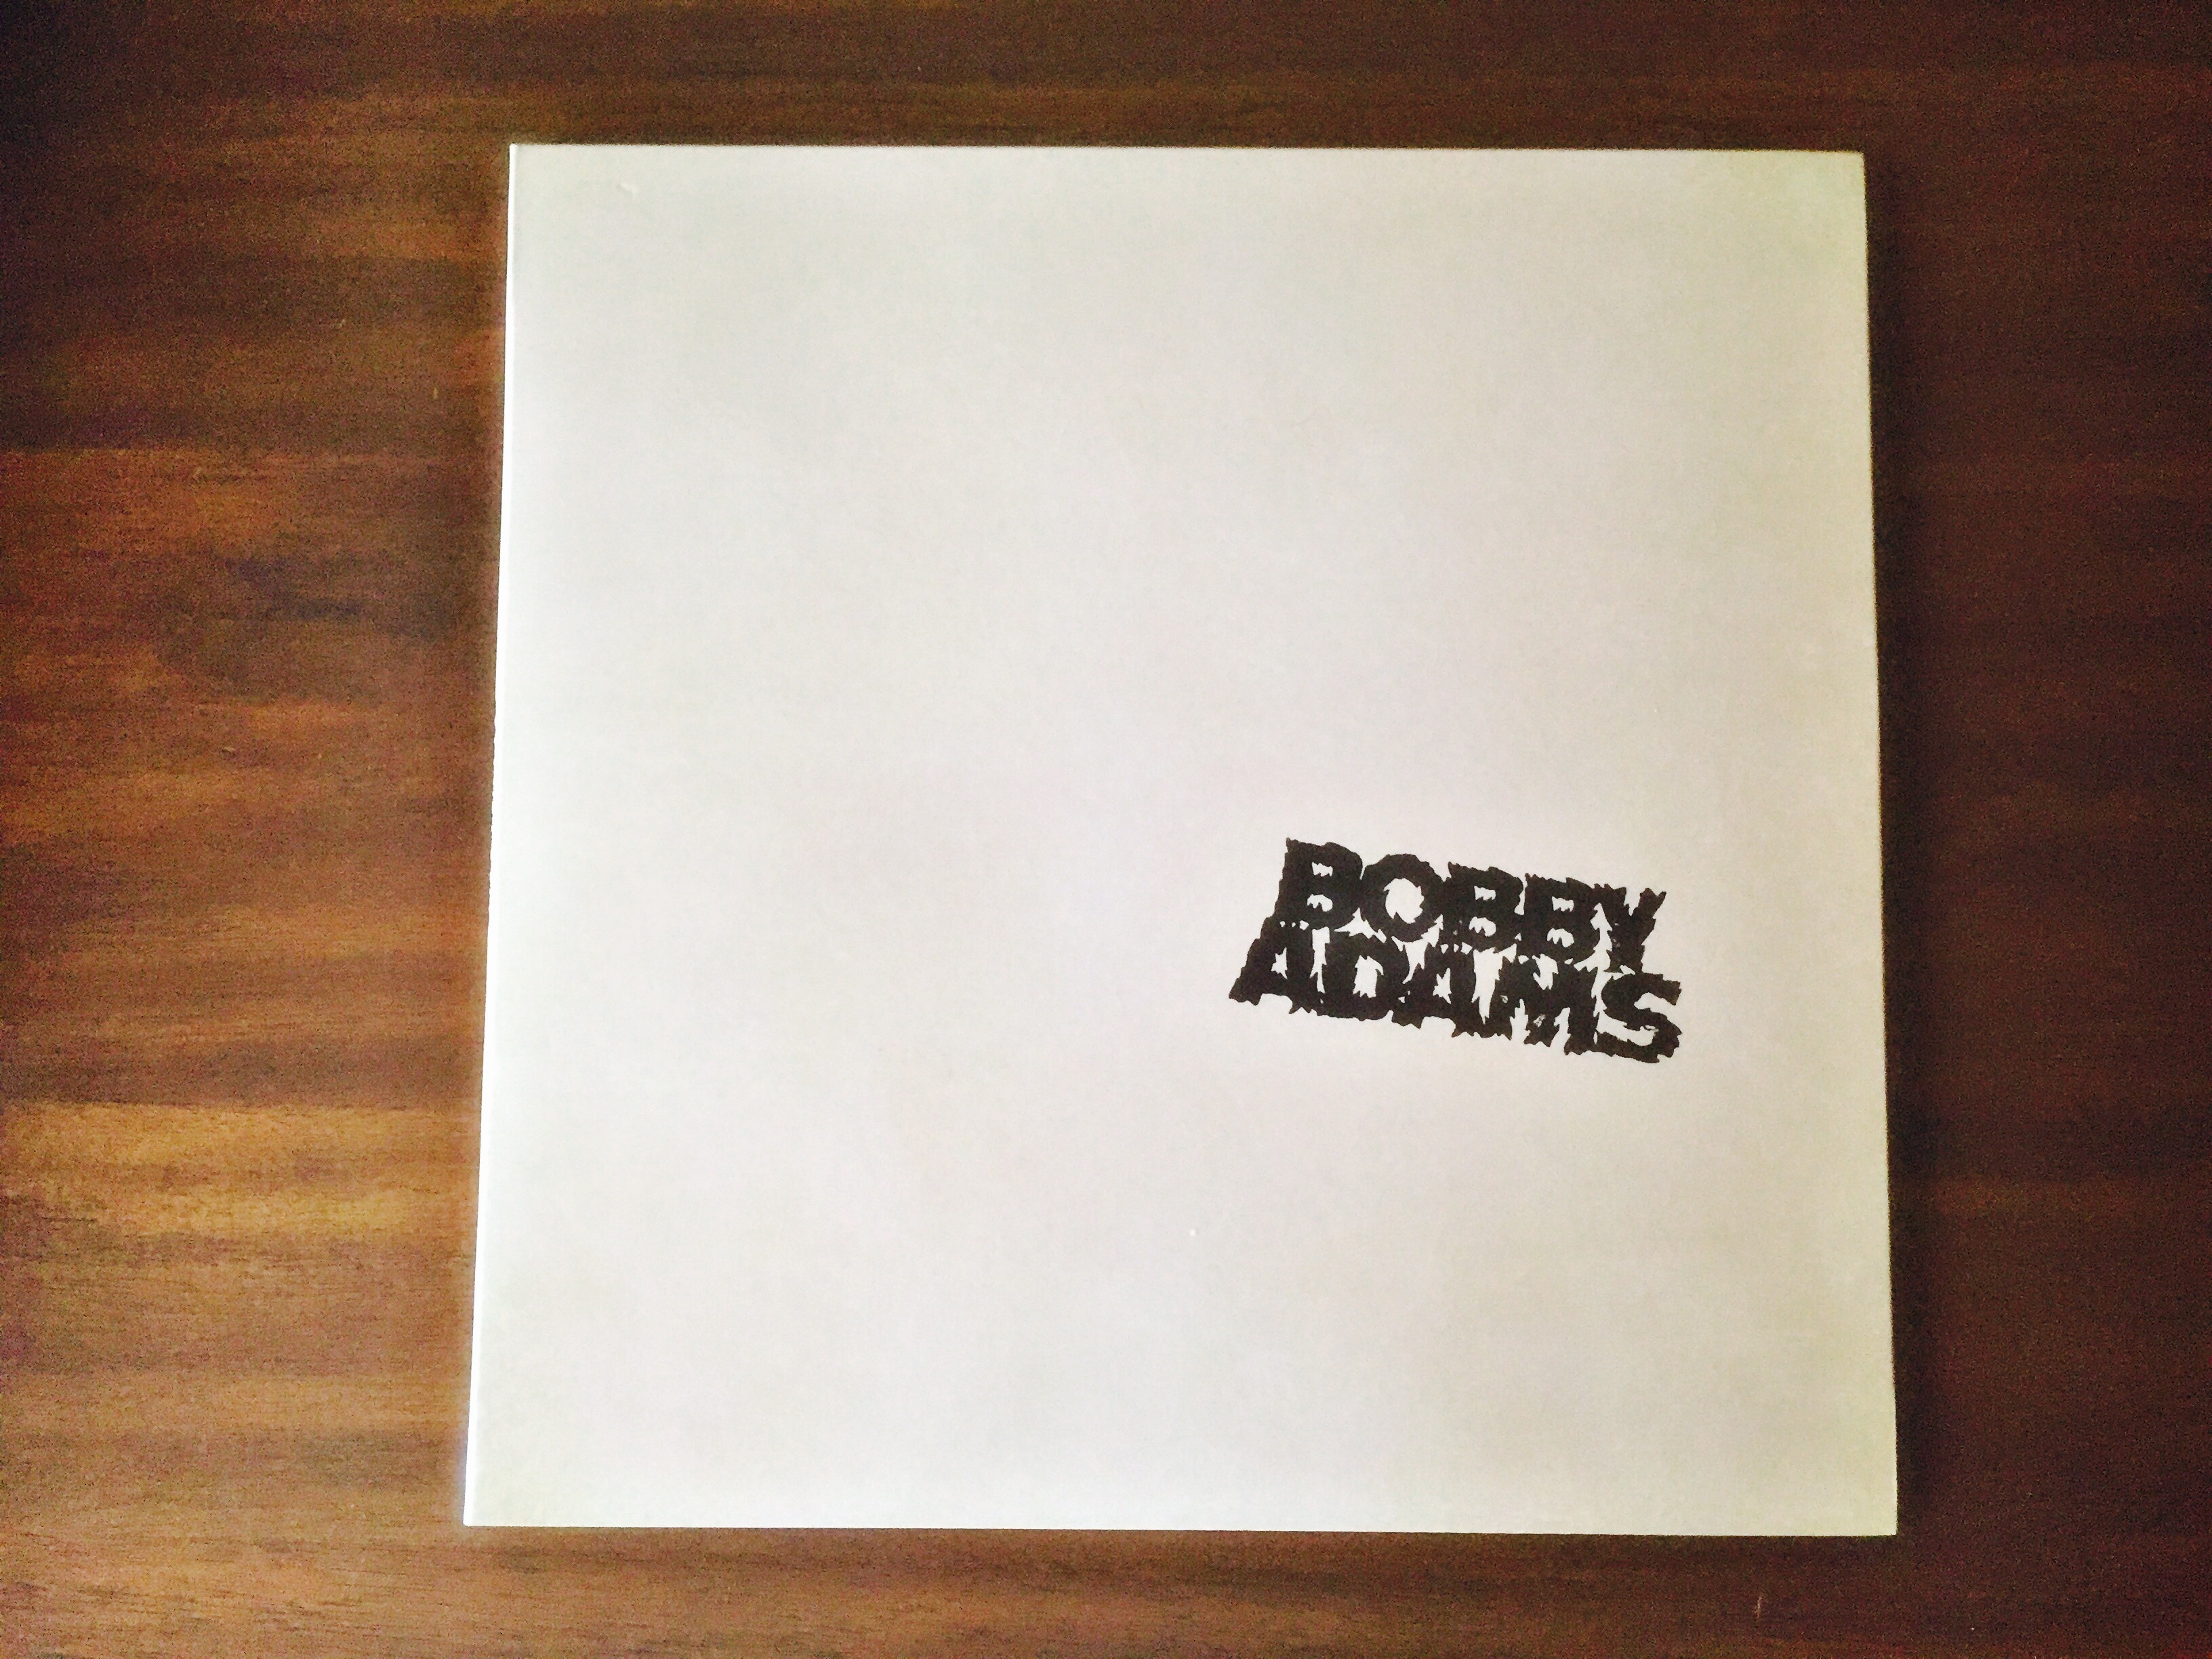 Bobby Adams LP front